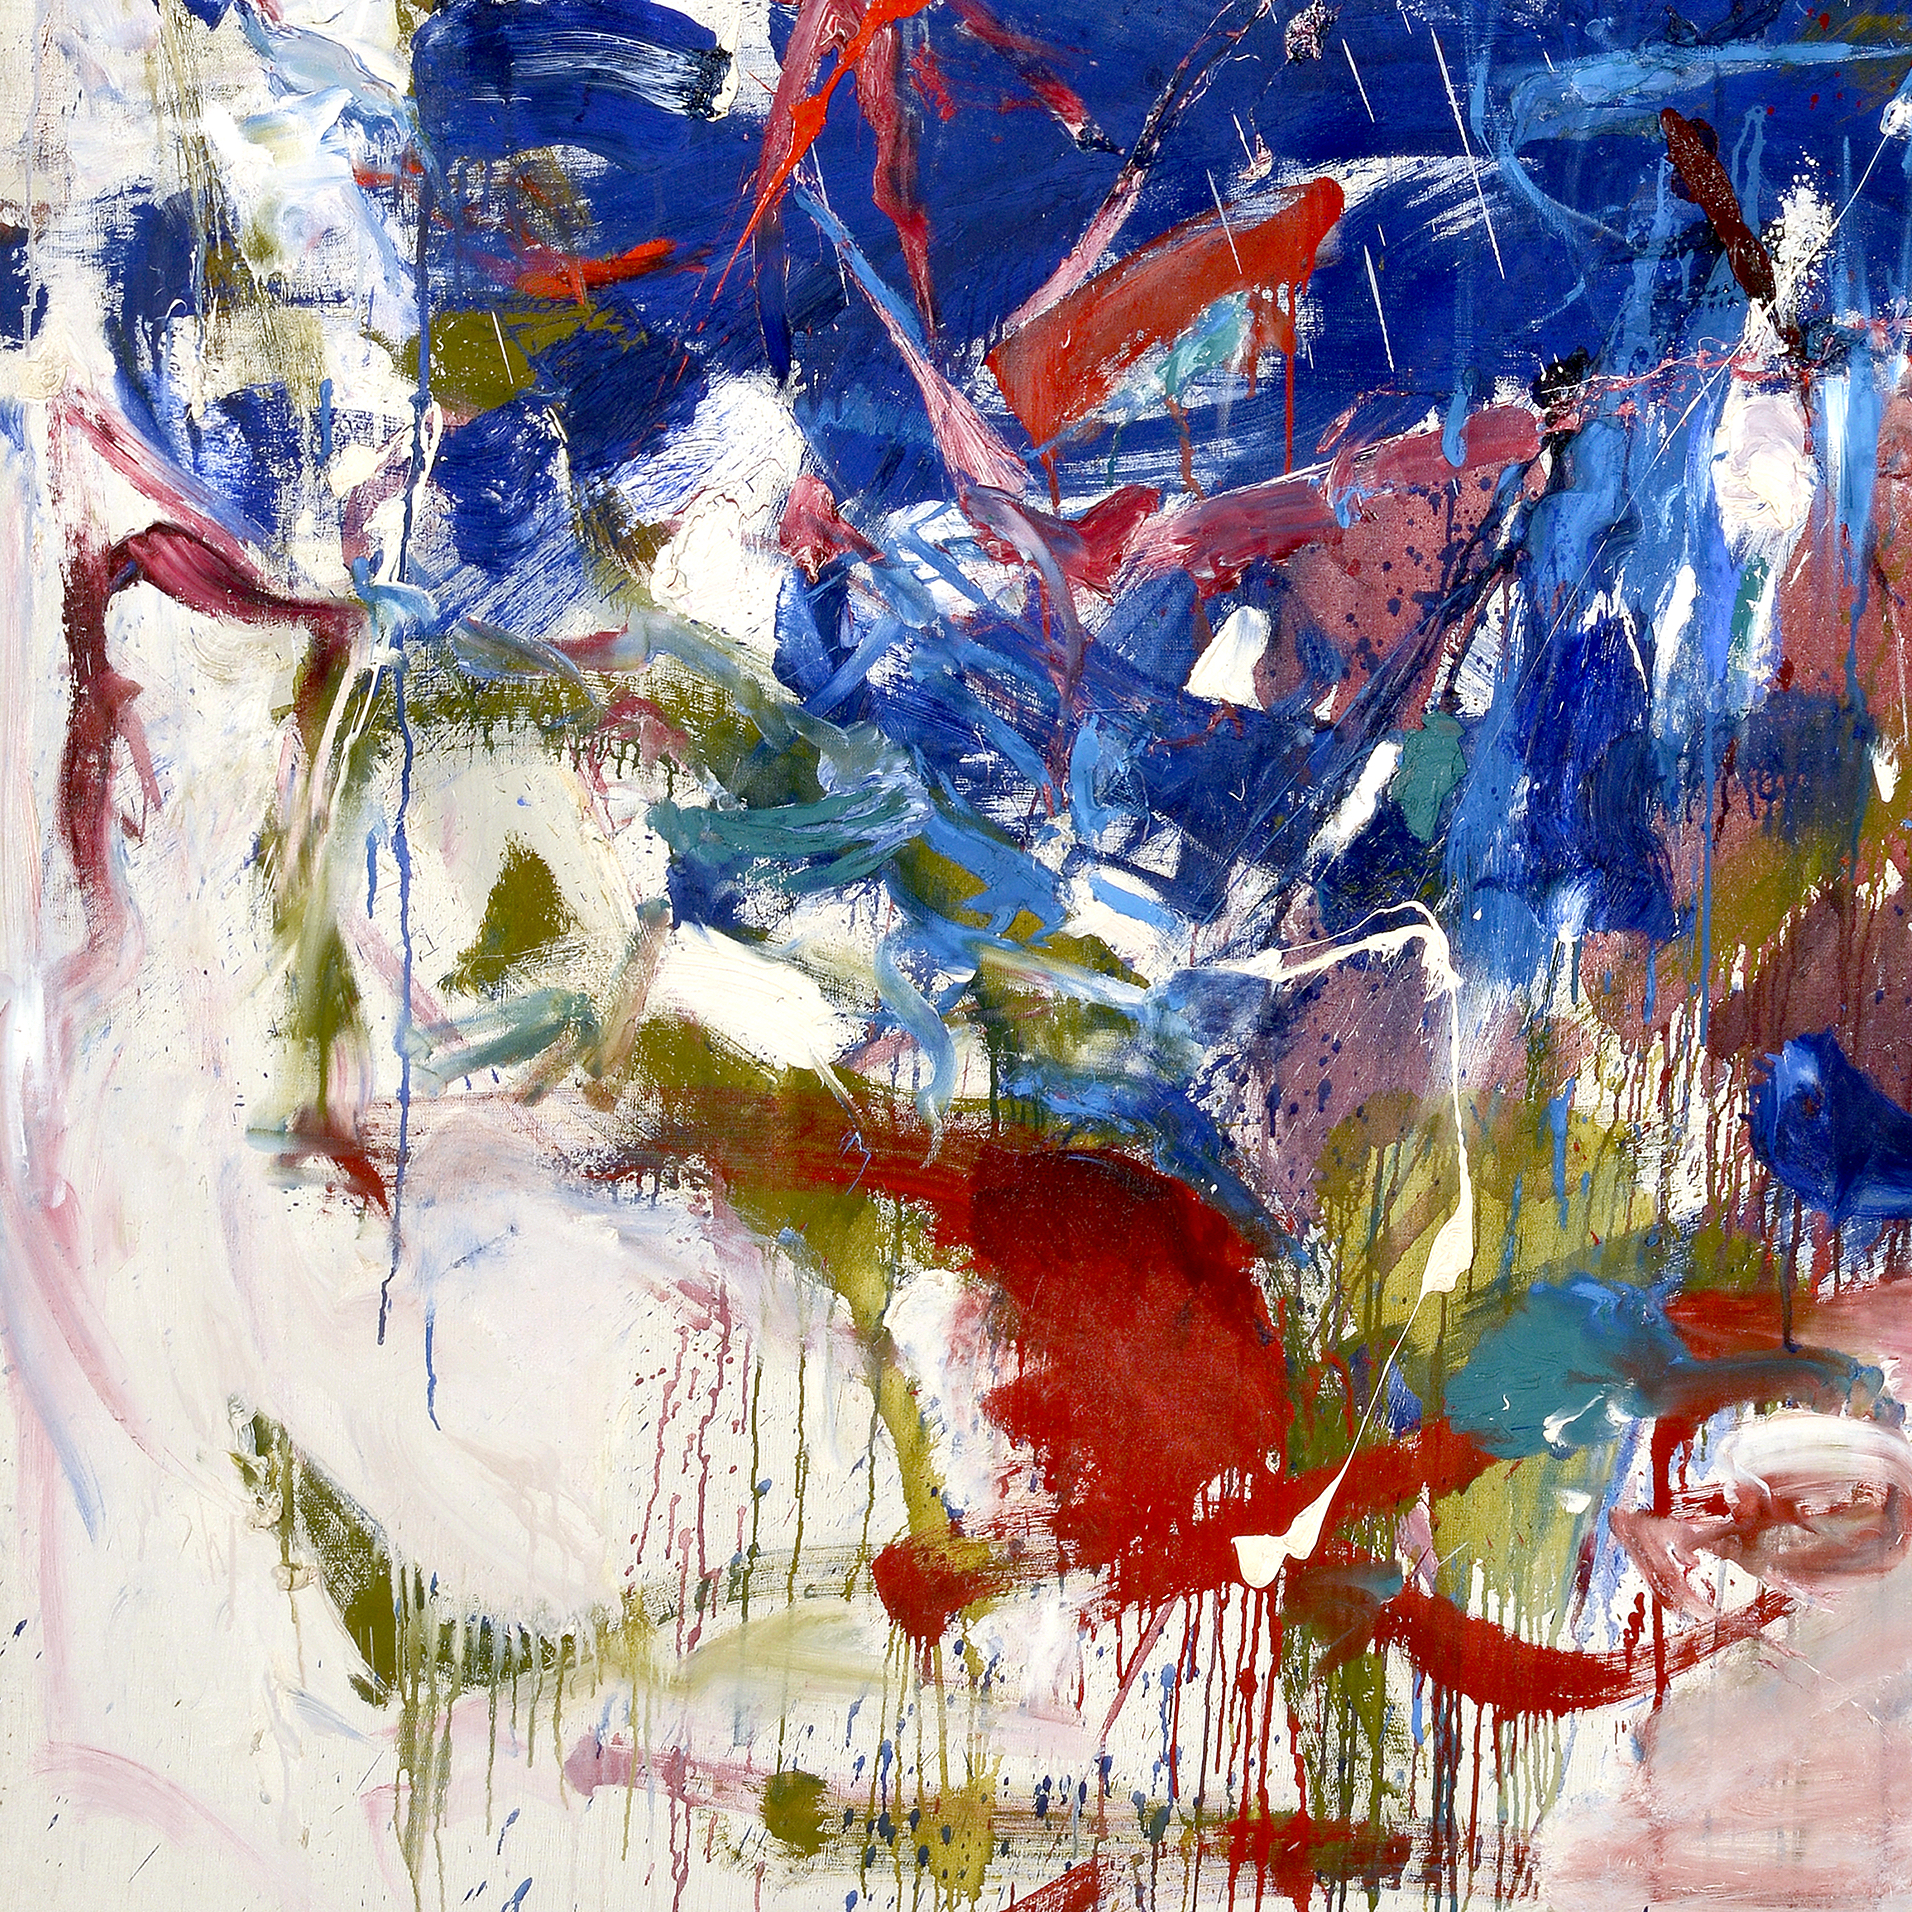 Image credit: Joan Mitchell Rock Bottom, 1960-1961 (detail) Oil on canvas The Blanton Museum of Art, The University of Texas at Austin Gift of Mari and James A. Michener, 1991